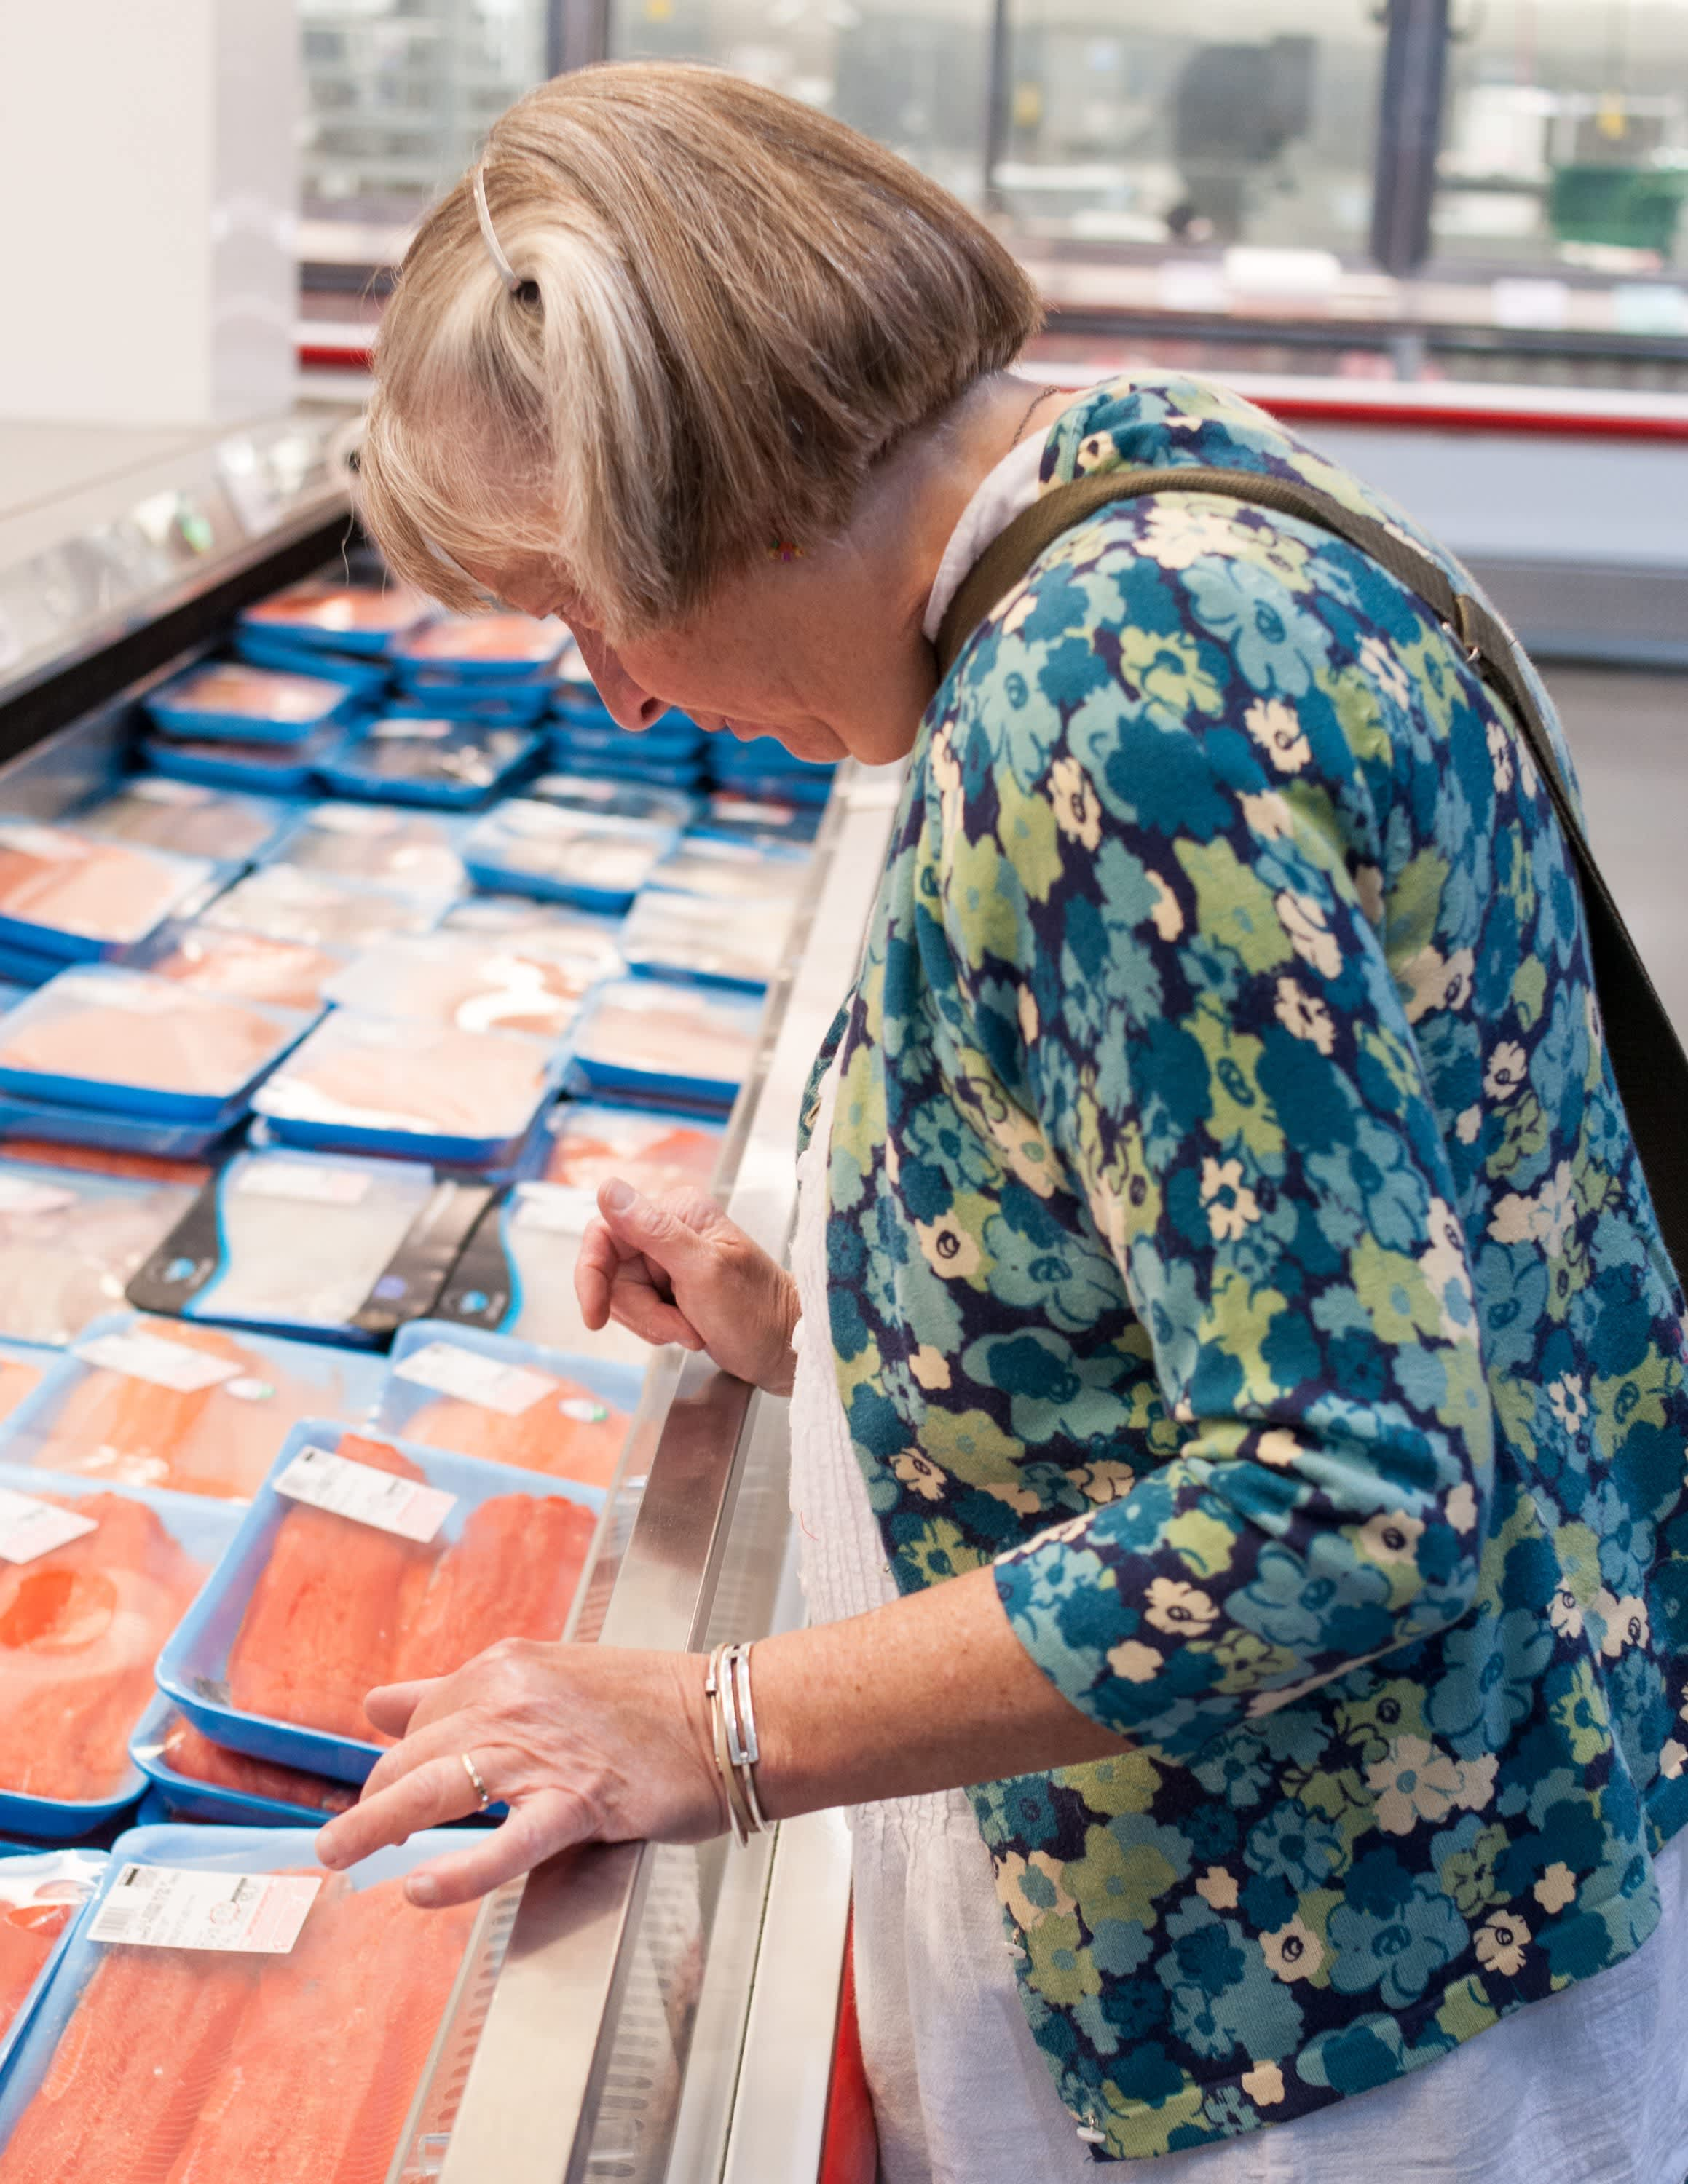 Woman choosing salmon from a refrigerator case